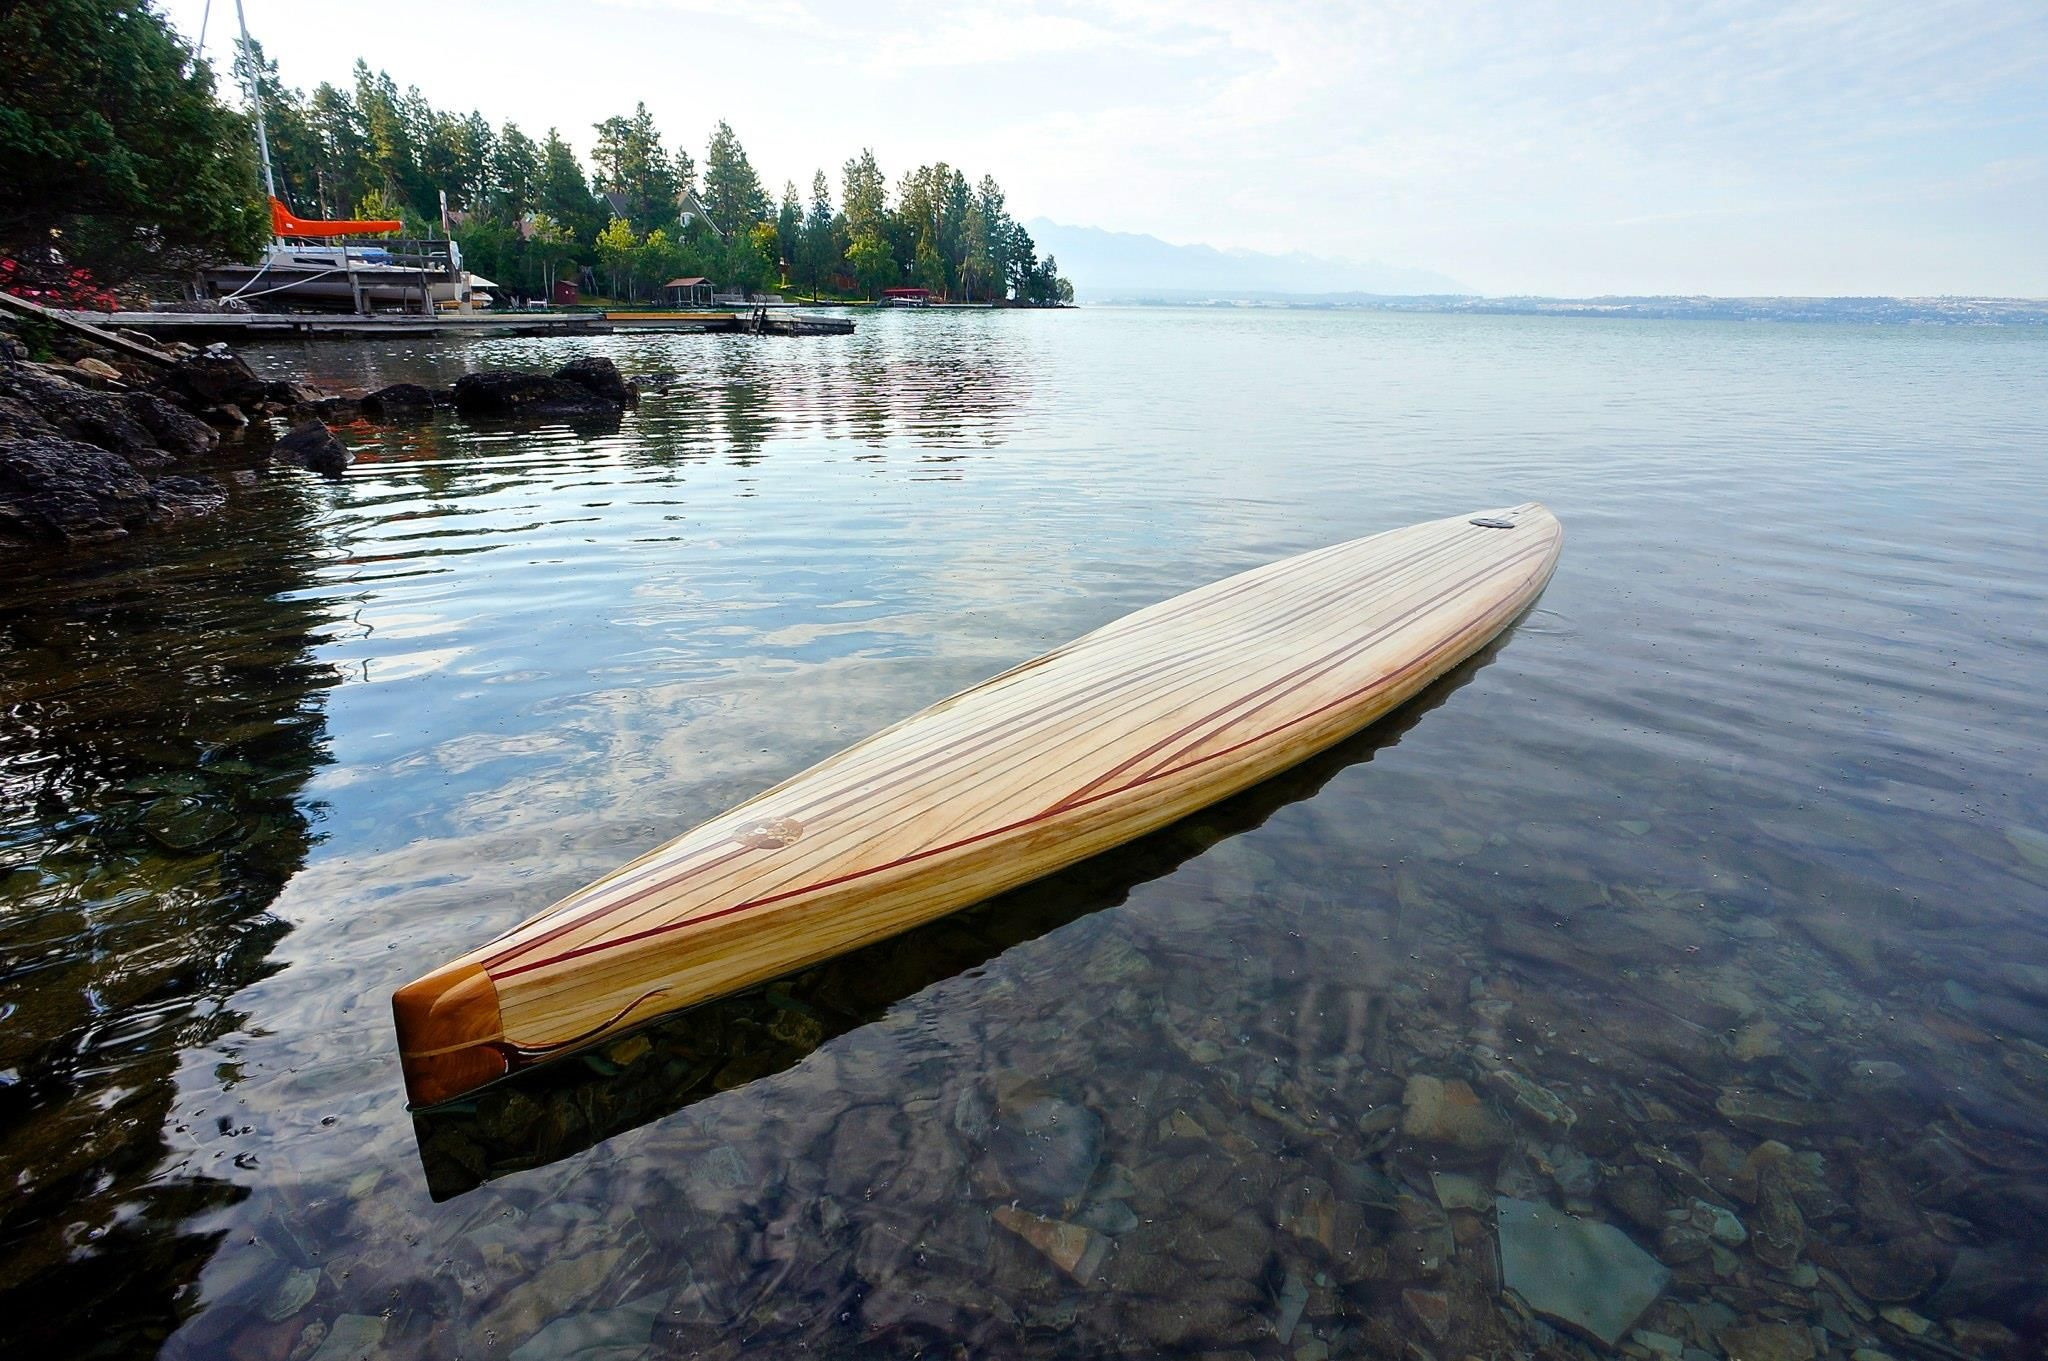 Building A Wooden Stand Up Paddleboard Sup With Images Wooden Boat Building Boat Plans Wooden Kayak